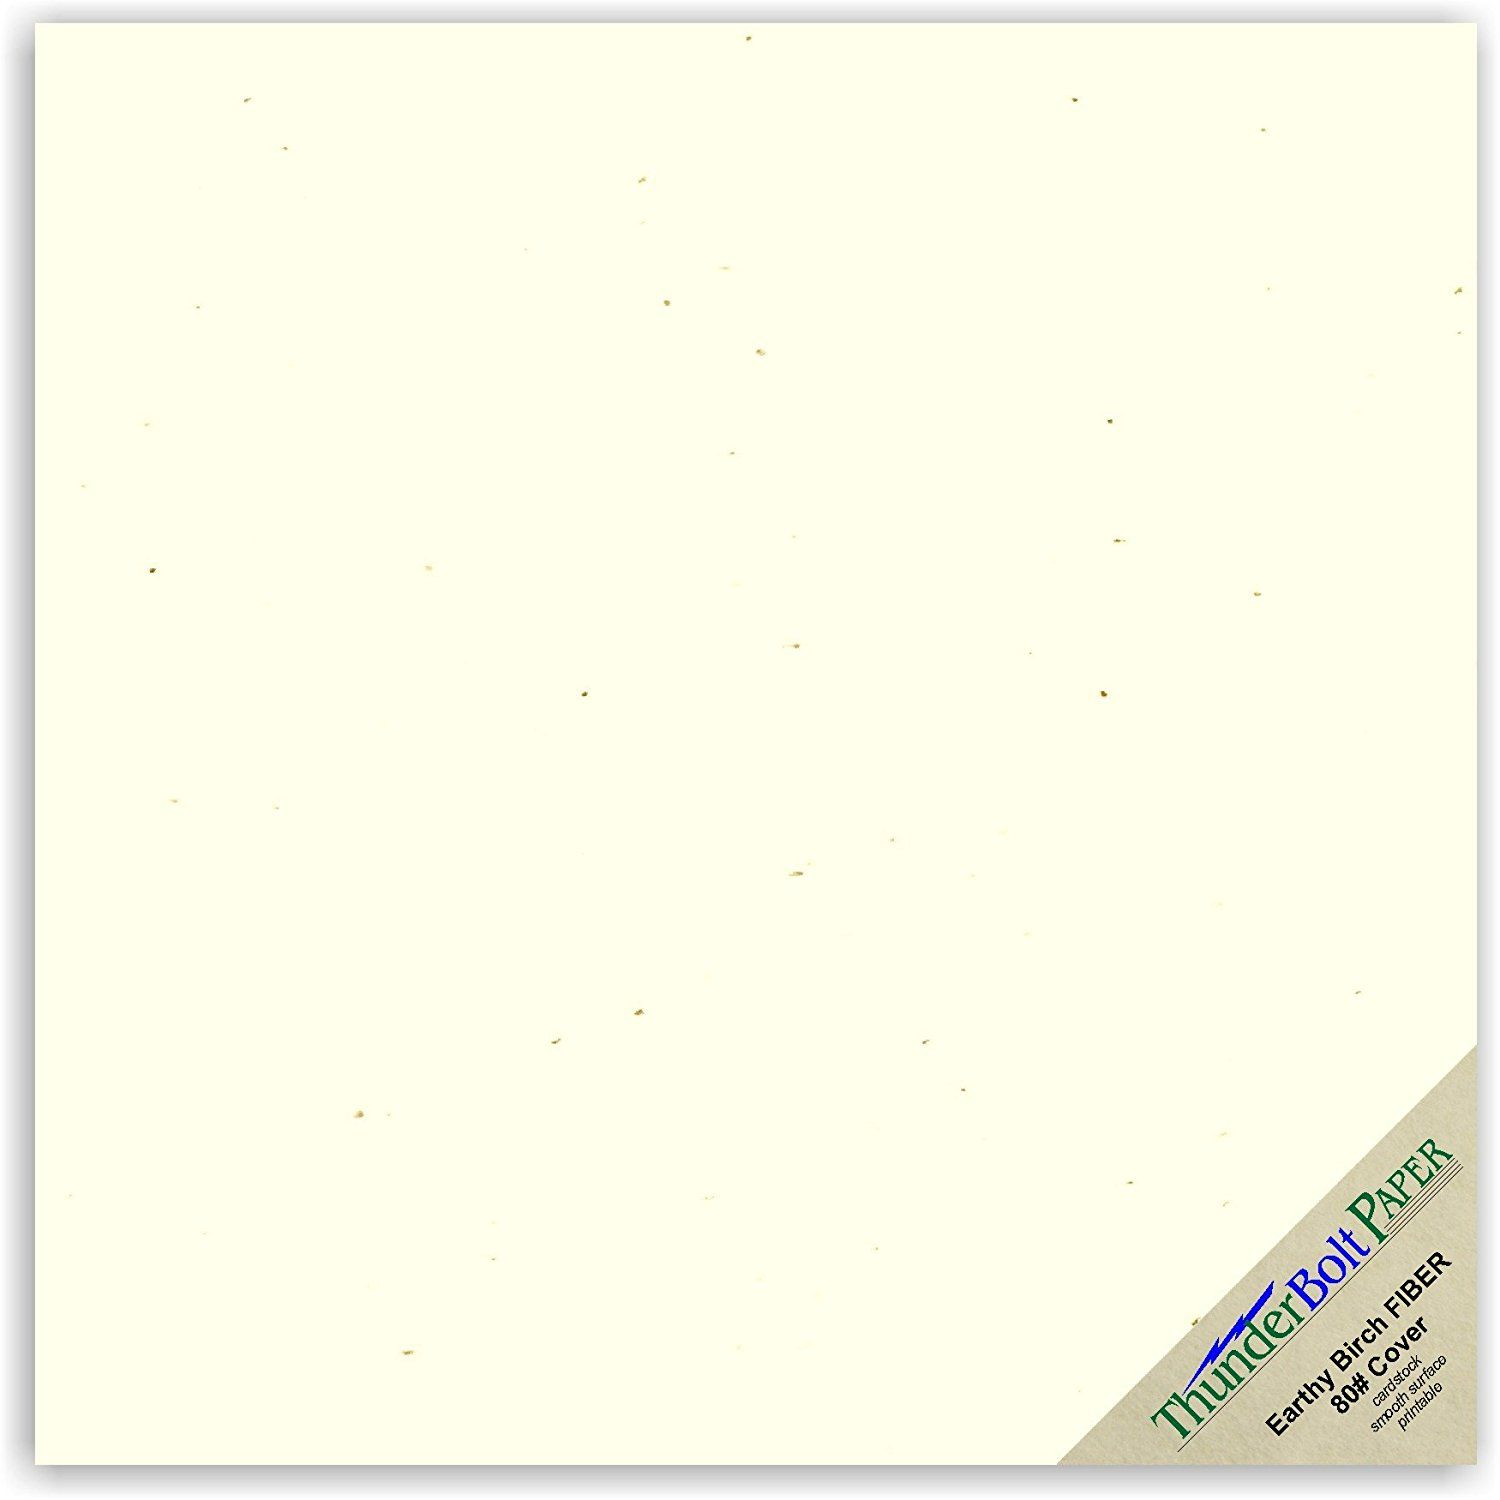 150 earthy birch fiber paper sheets 80 80 lbpound covercard covercard weight 12 x 12 12x12 inches scrapbook albumcover size quality paper for stunning results in expressing your creative do it yourself solutioingenieria Image collections